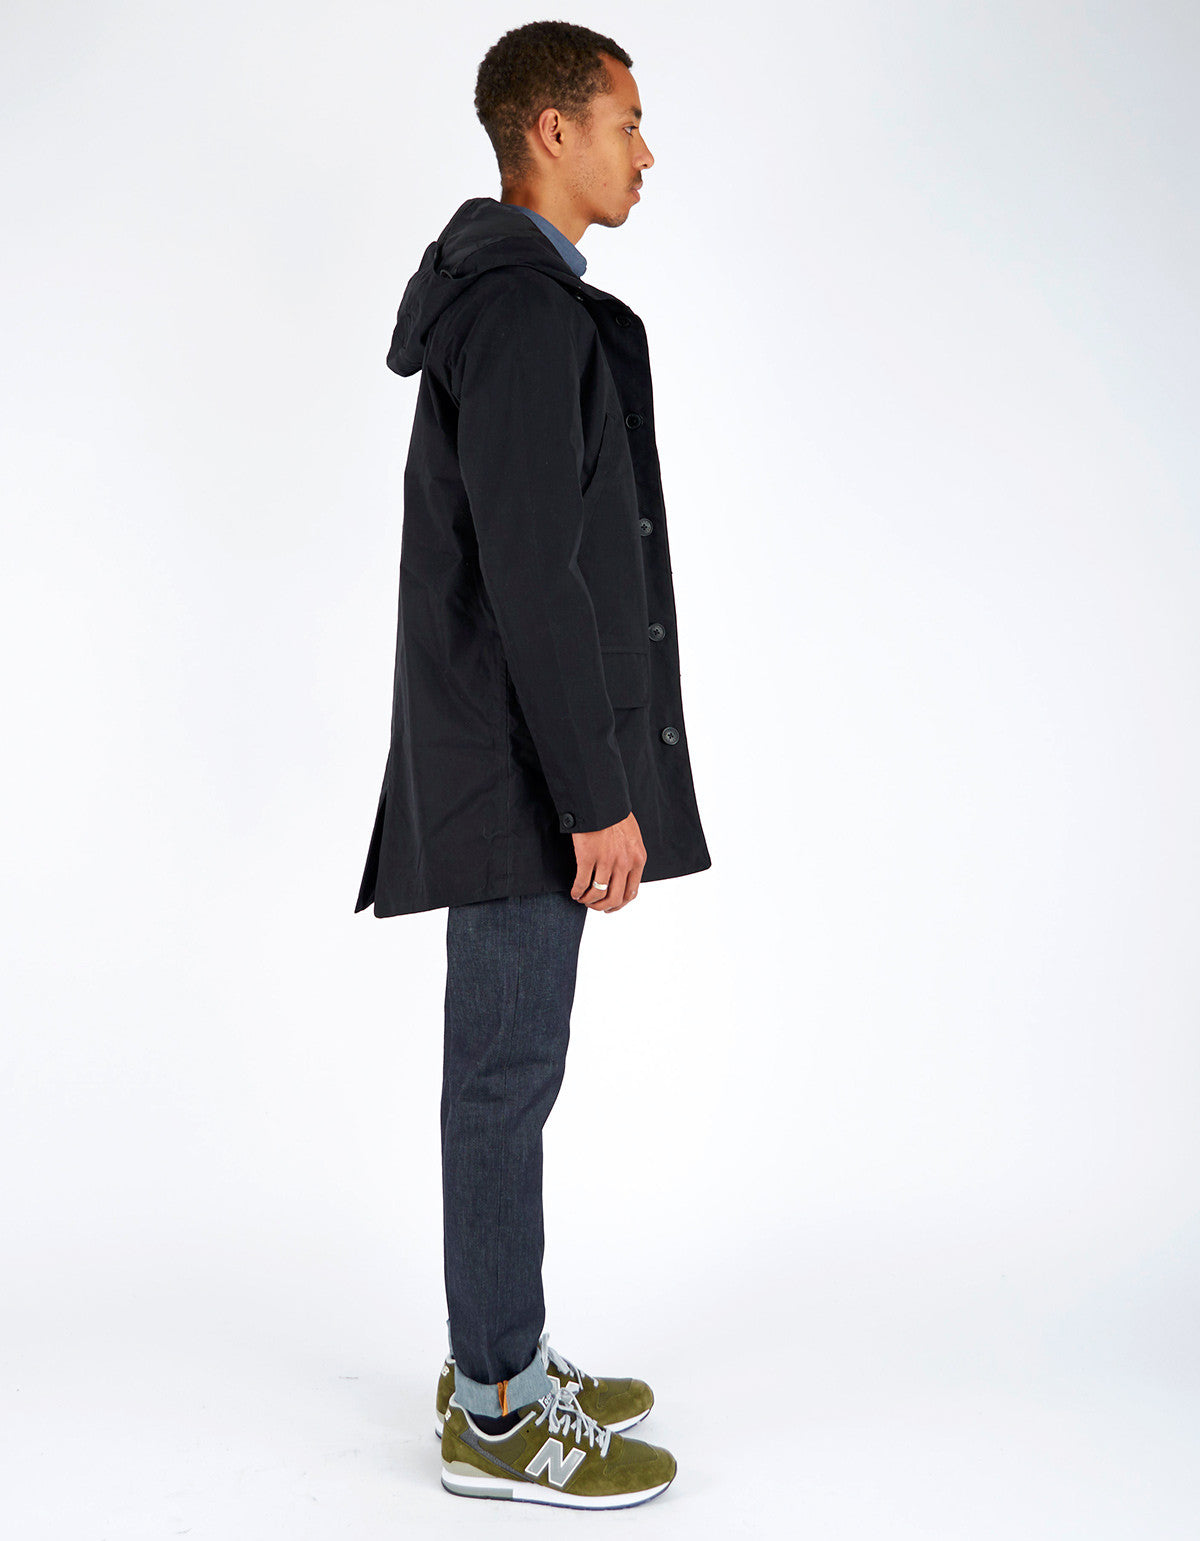 Baro Brockton Jacket Black - Still Life - 4